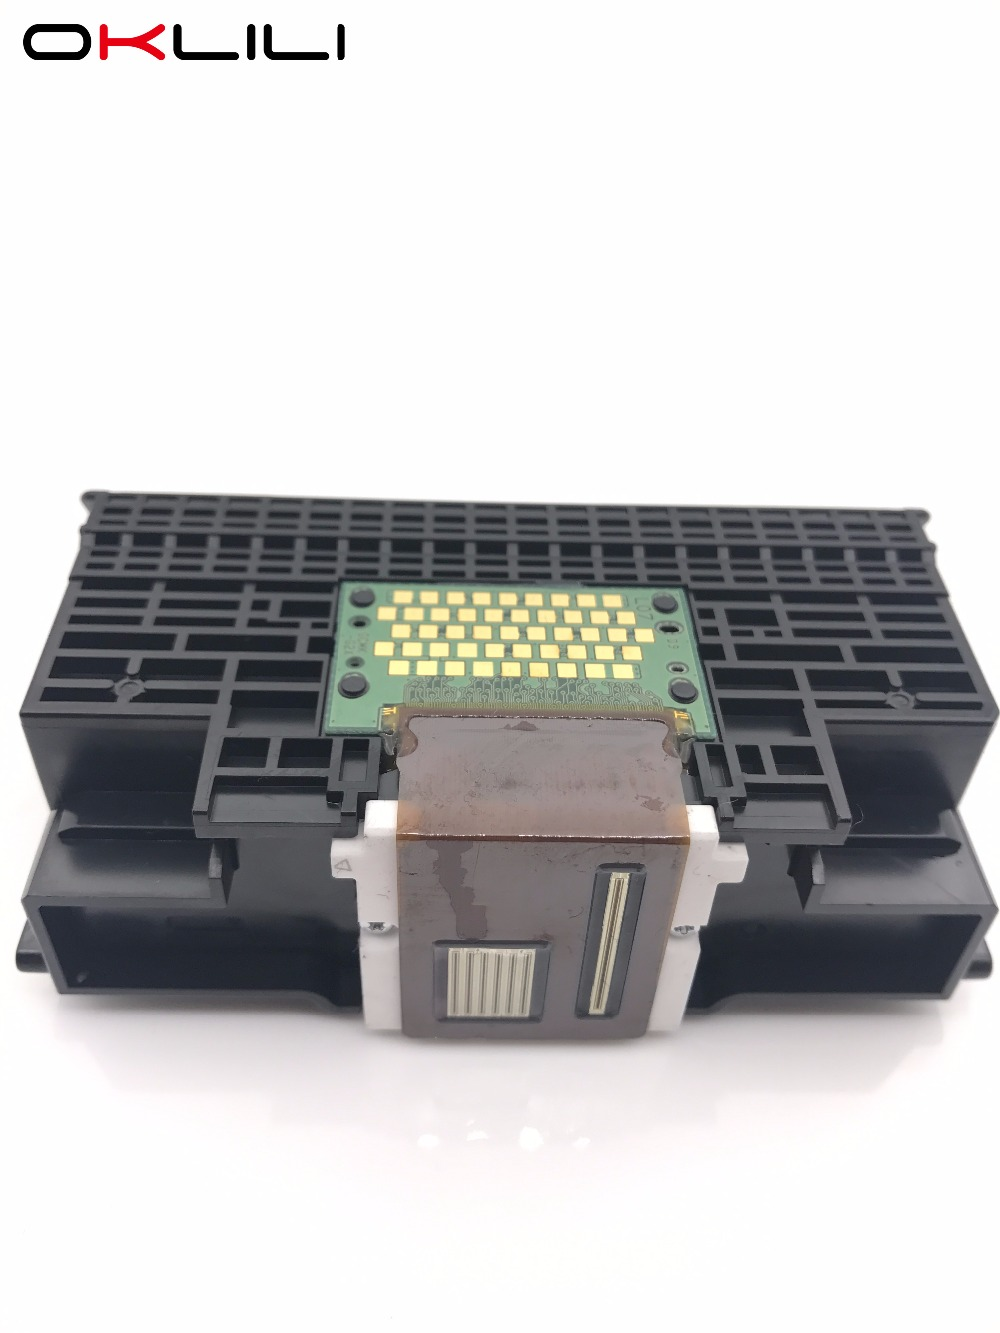 OKLILI ORIGINAL QY6-0062 QY6-0062-000 Printhead Print Head Printer Head for Canon iP7500 iP7600 MP950 MP960 MP970 high quality original print head qy6 0057 printhead compatible for canon ip5000 ip5000r printer head